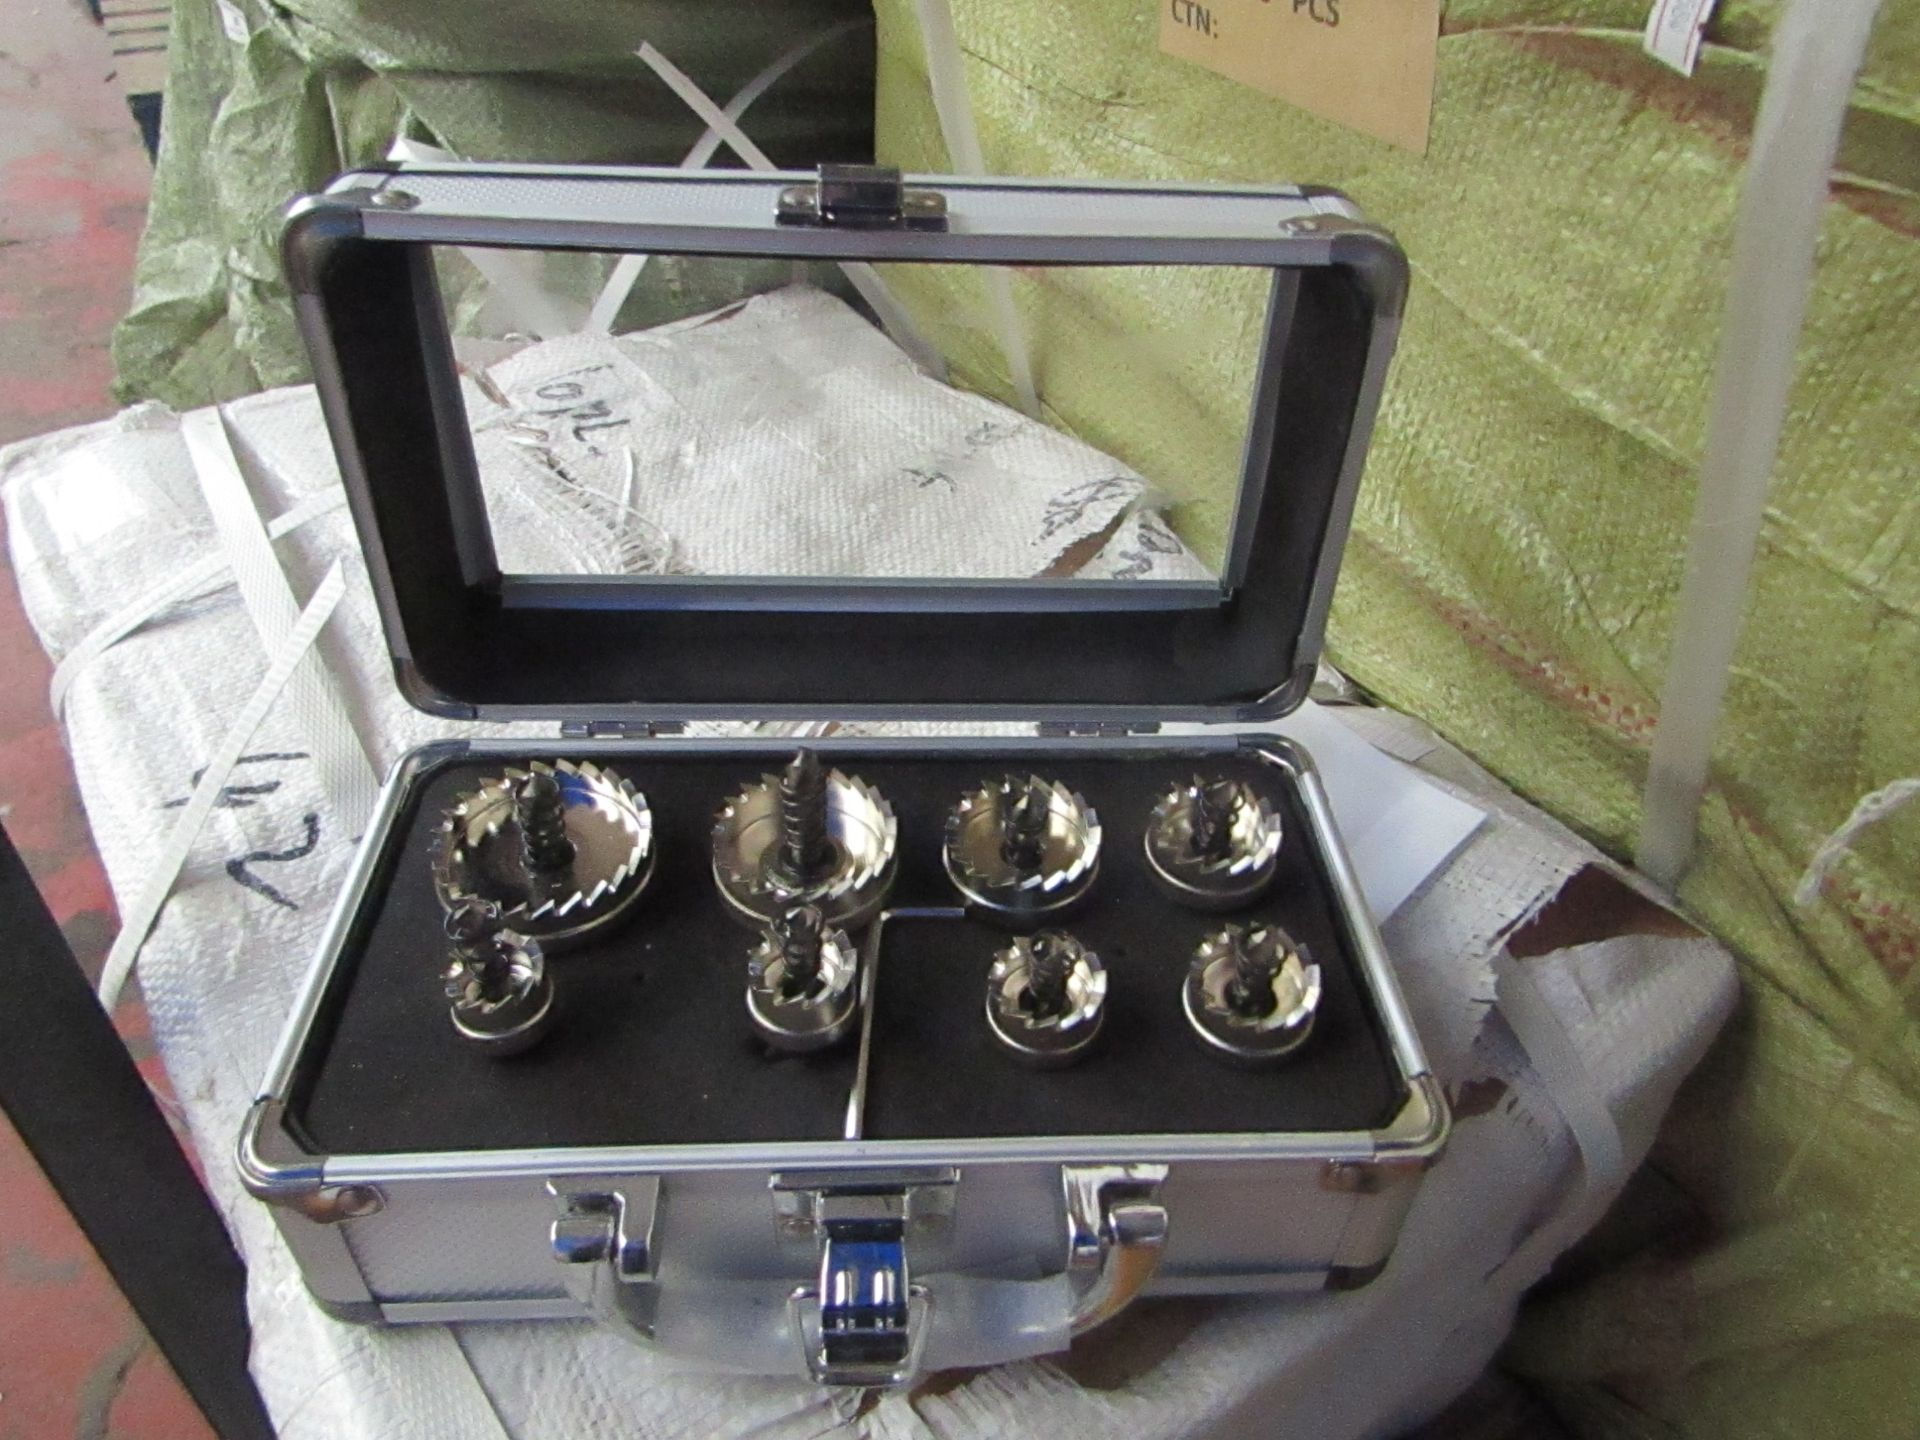 Lot 4 - 8 piece hole saw set in metal carry case, new